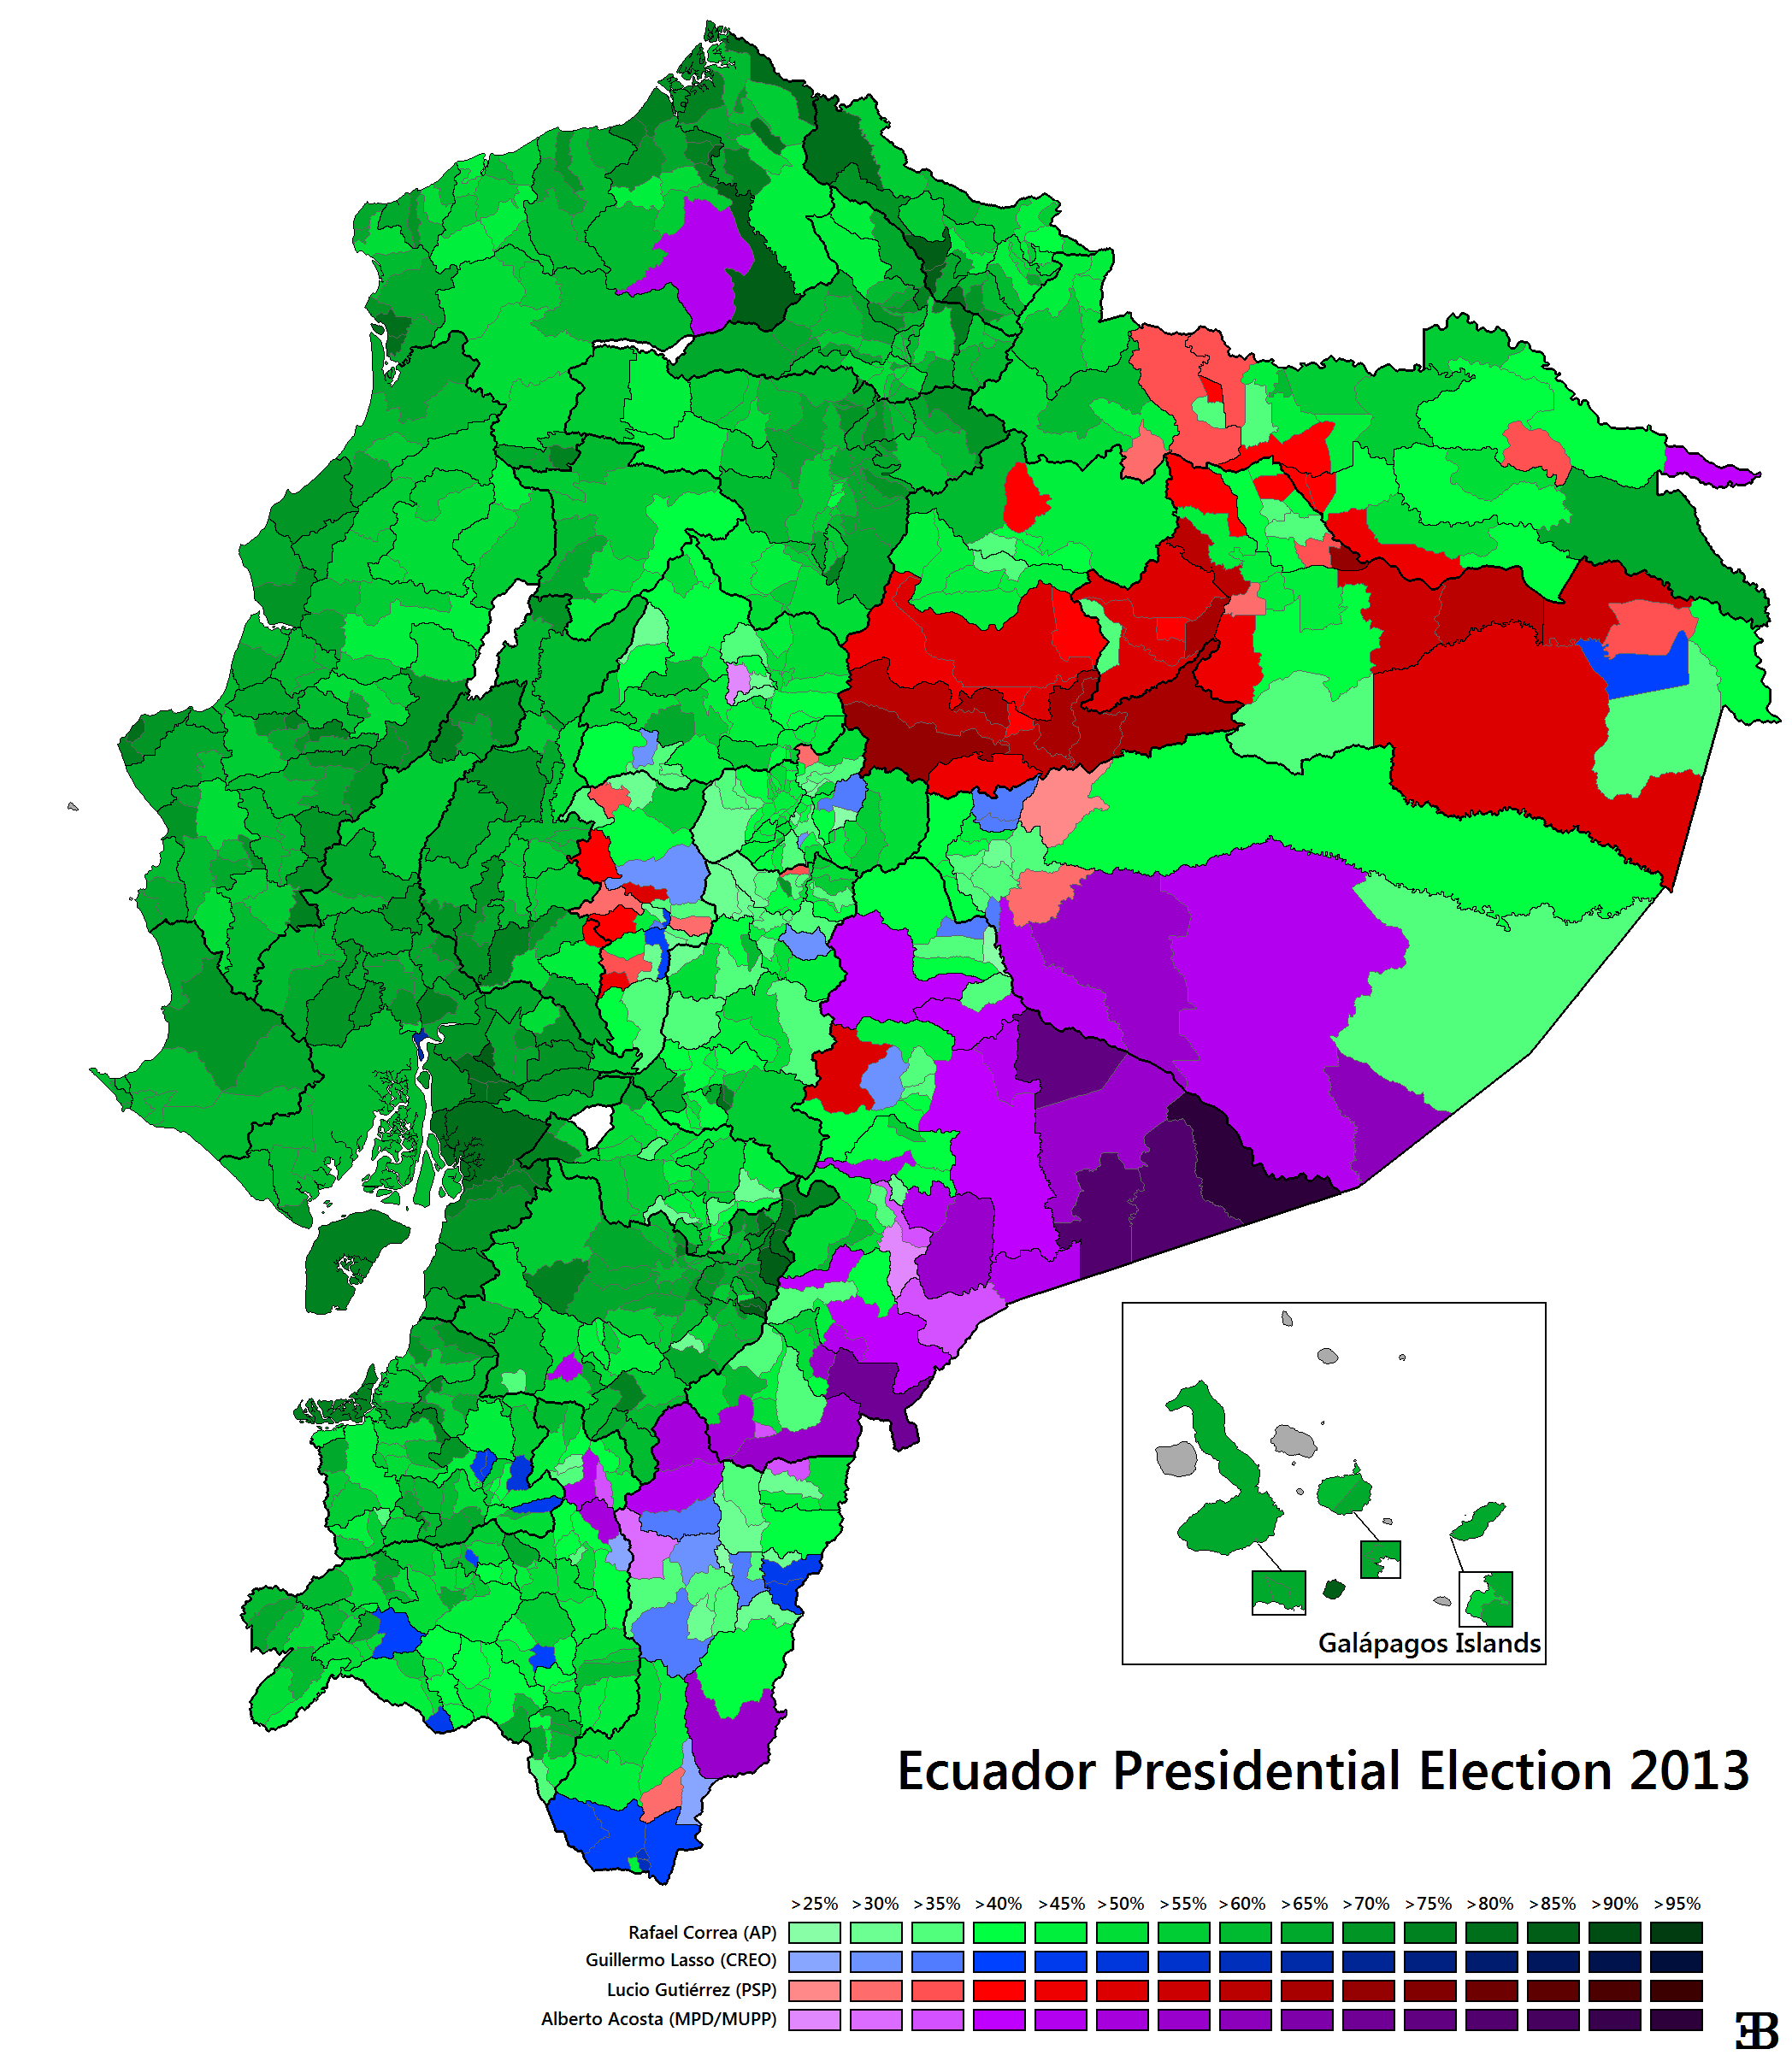 Ecuadorian maps thread it took me hours and hours but here it is the 2013 ecuadorian presidential election results map by parishes third level administrative divisions gumiabroncs Choice Image